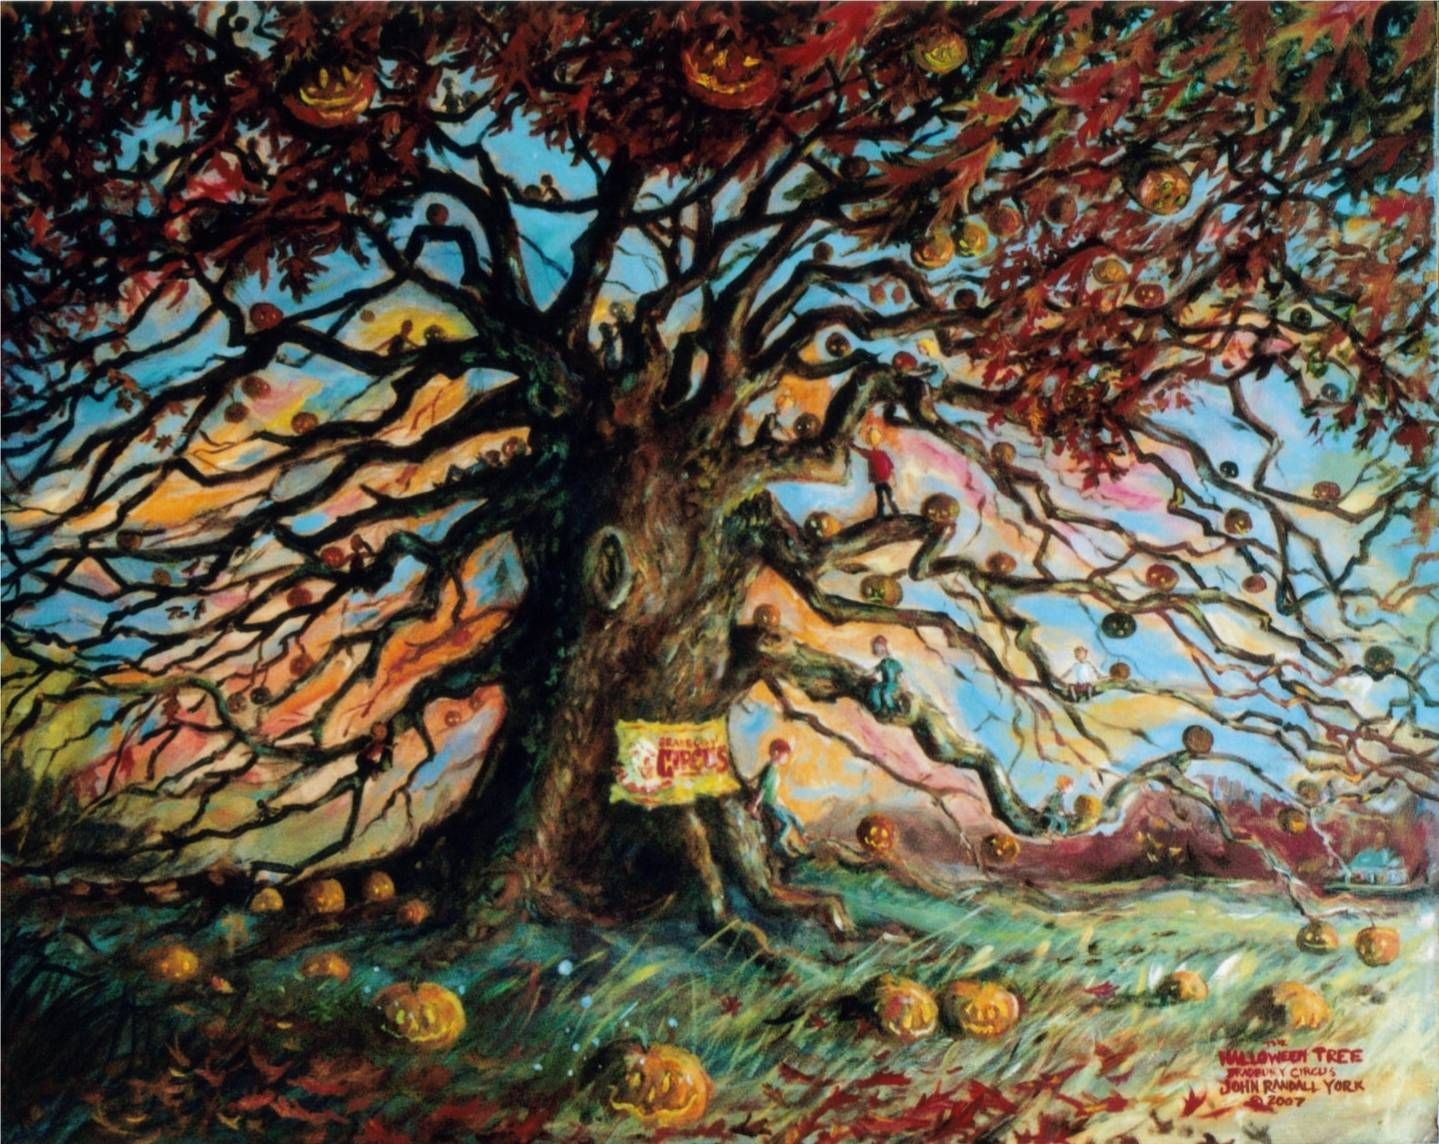 the halloween tree is a 1972 fantasy novelamerican author ray